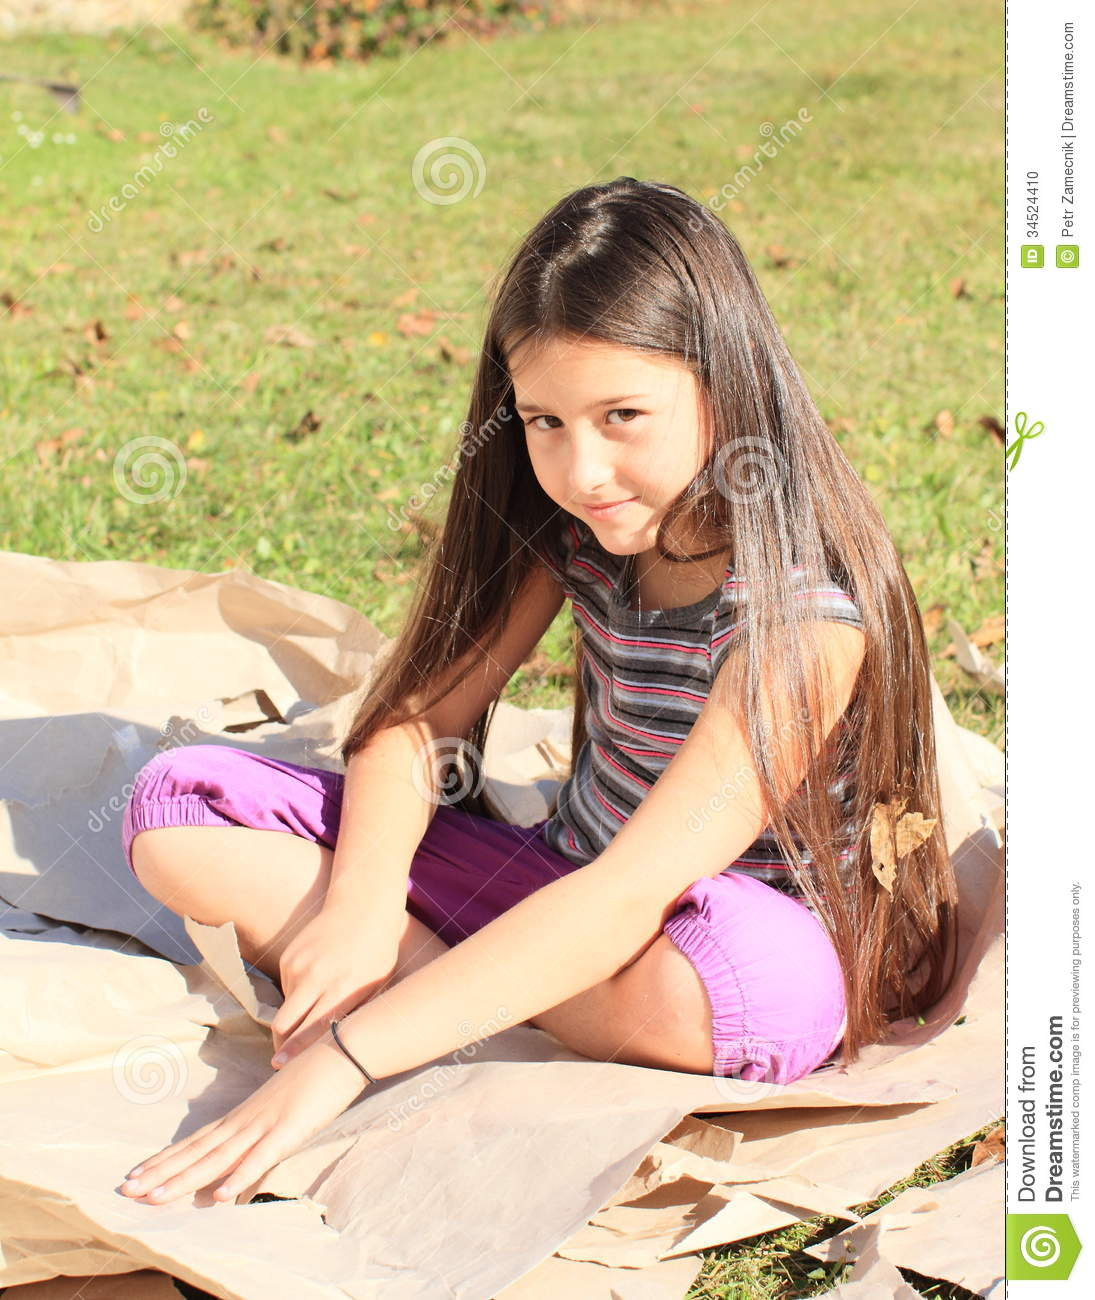 ... kid - smiling girl with long brown hair cutting big leaves of paper